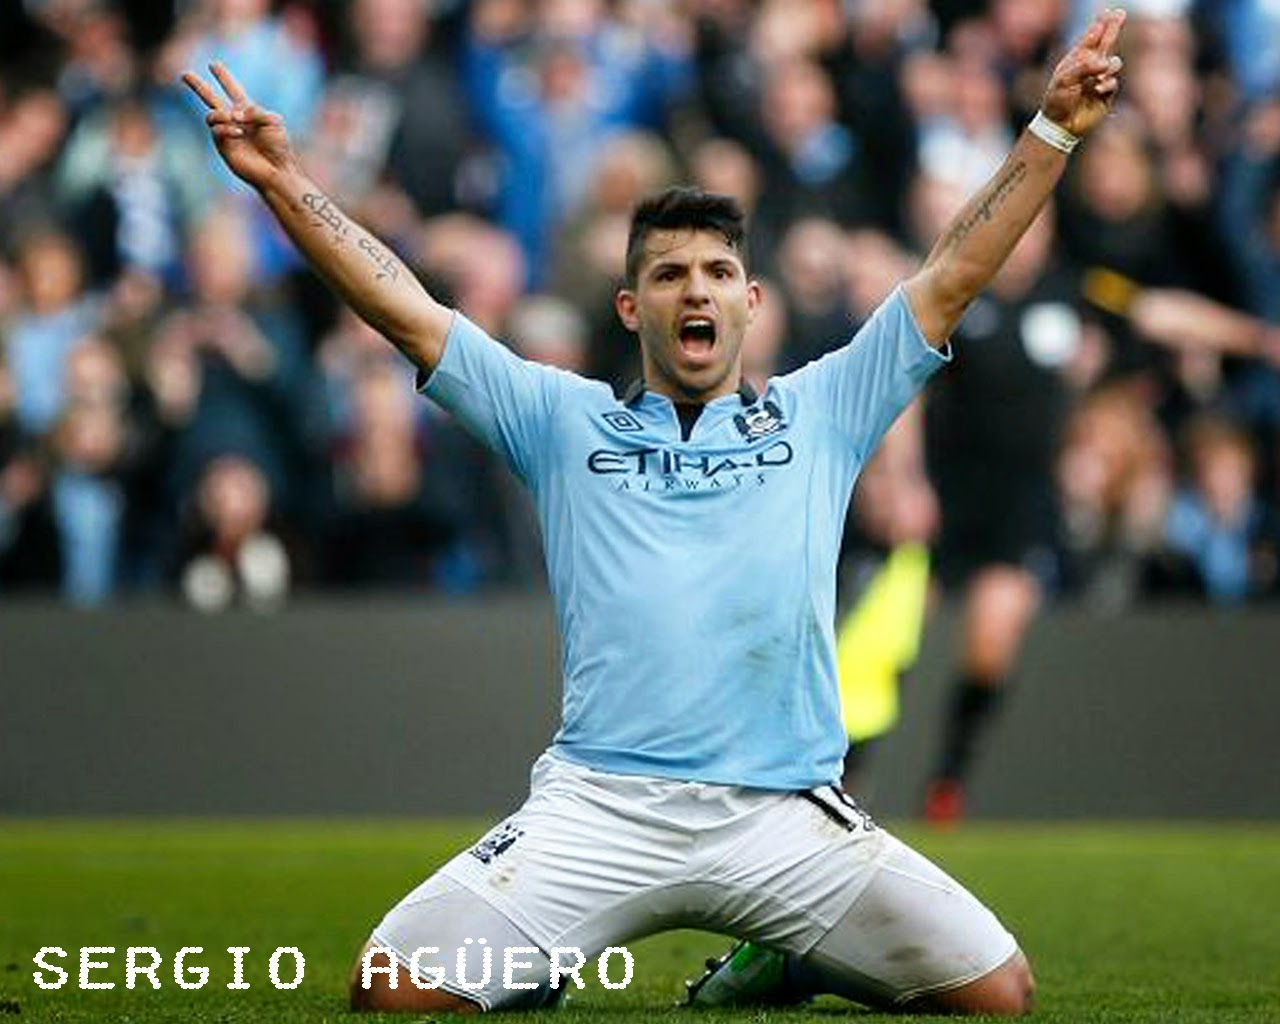 Sergio Aguero Soccer Player Wallpapers: Player Football Wallpaper